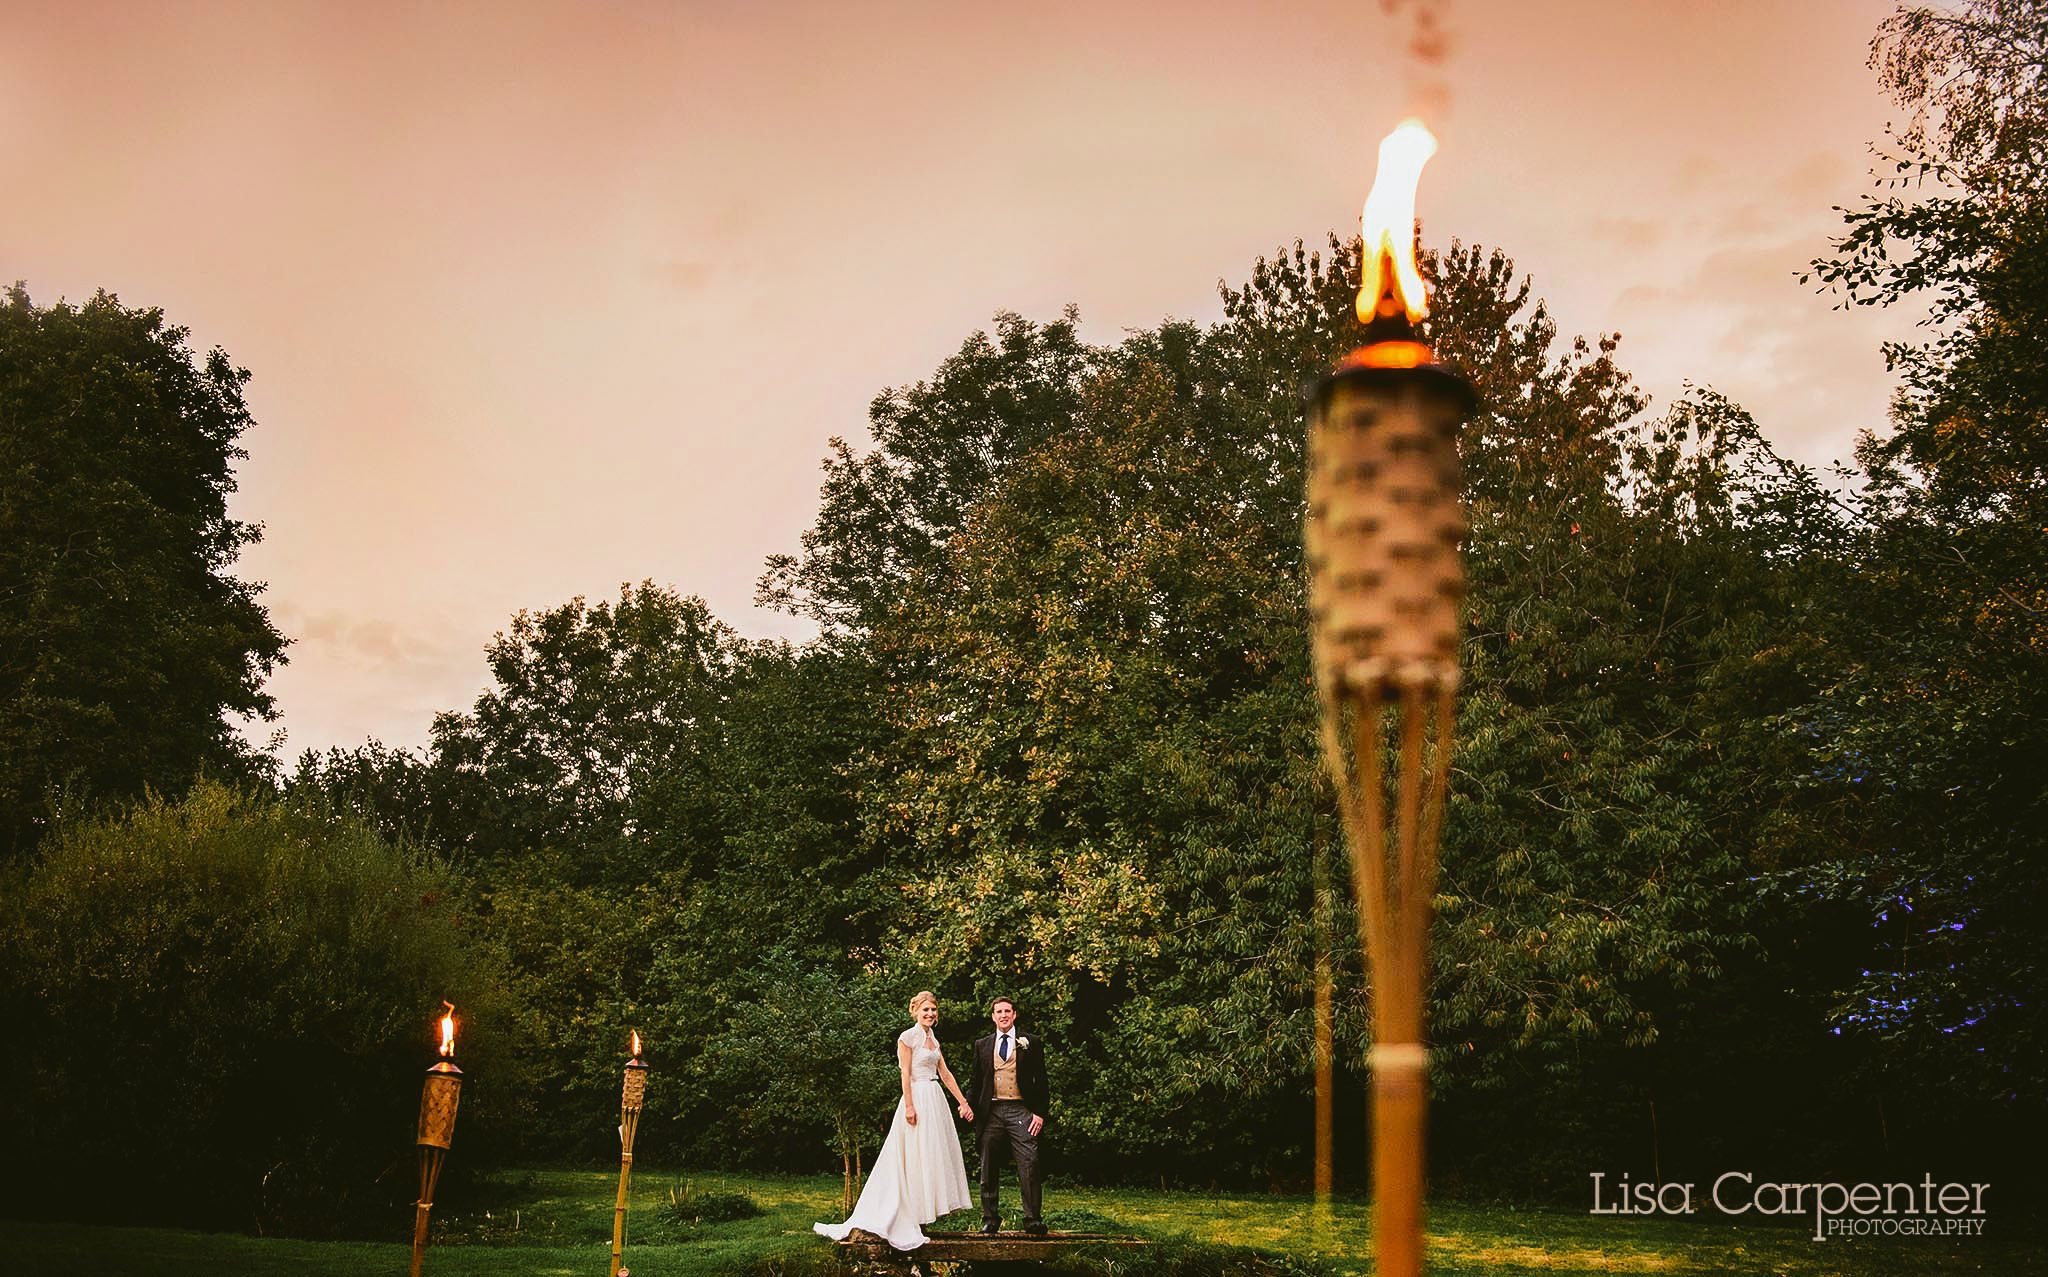 Golden Hour Portrait With Tiki Lighting For An Outdoor Top Hat And Tails Wedding Reception